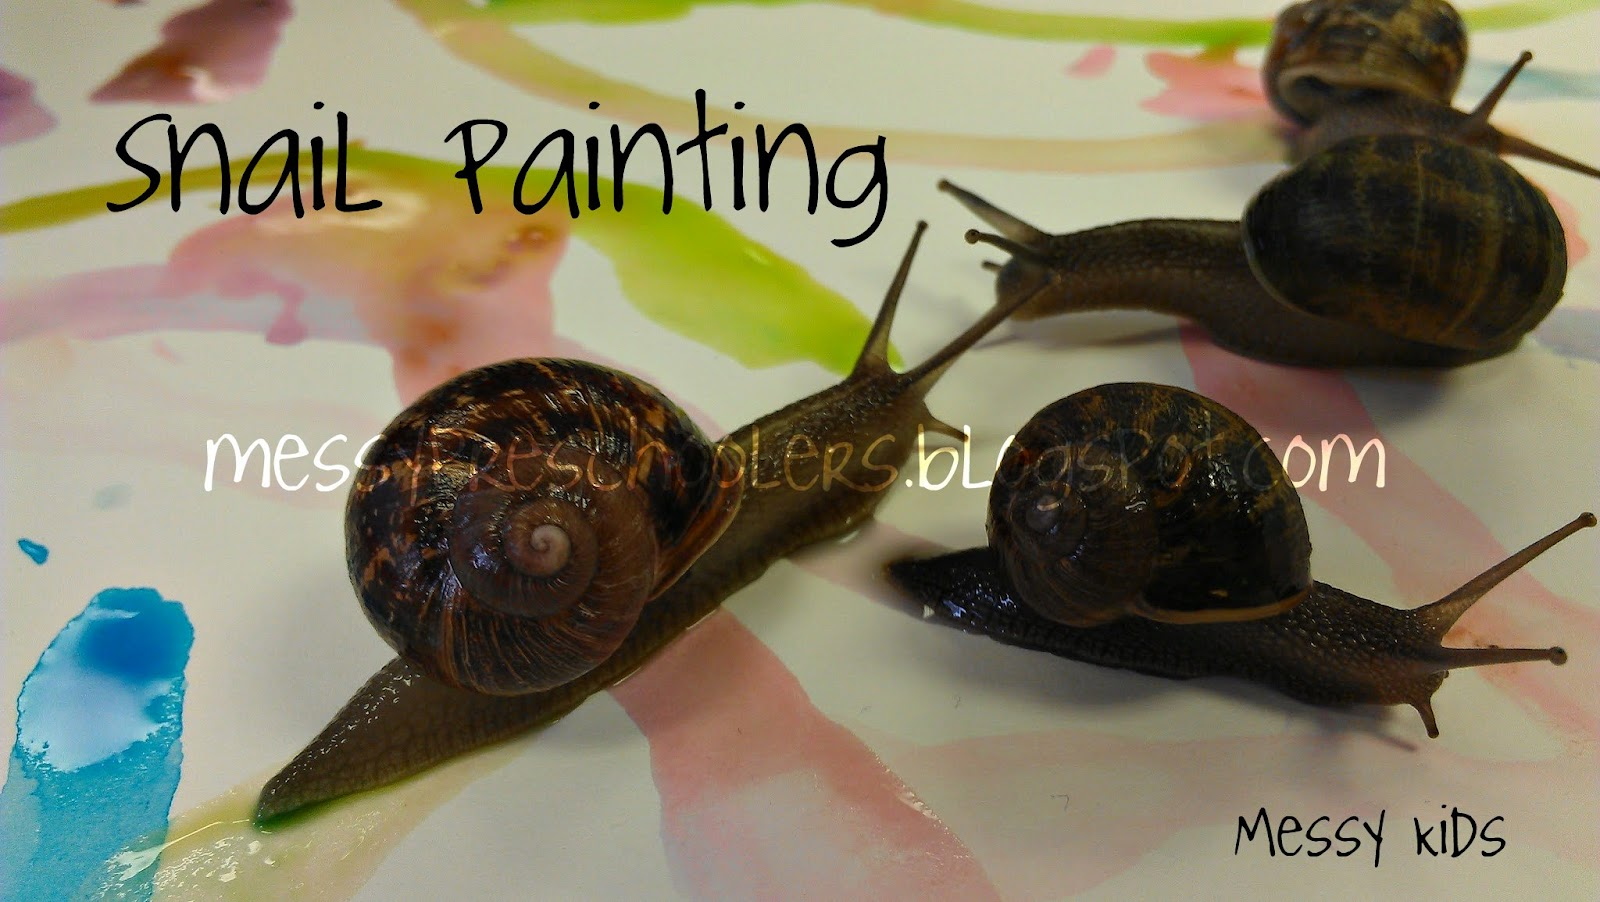 Messy Kids Snail Painting